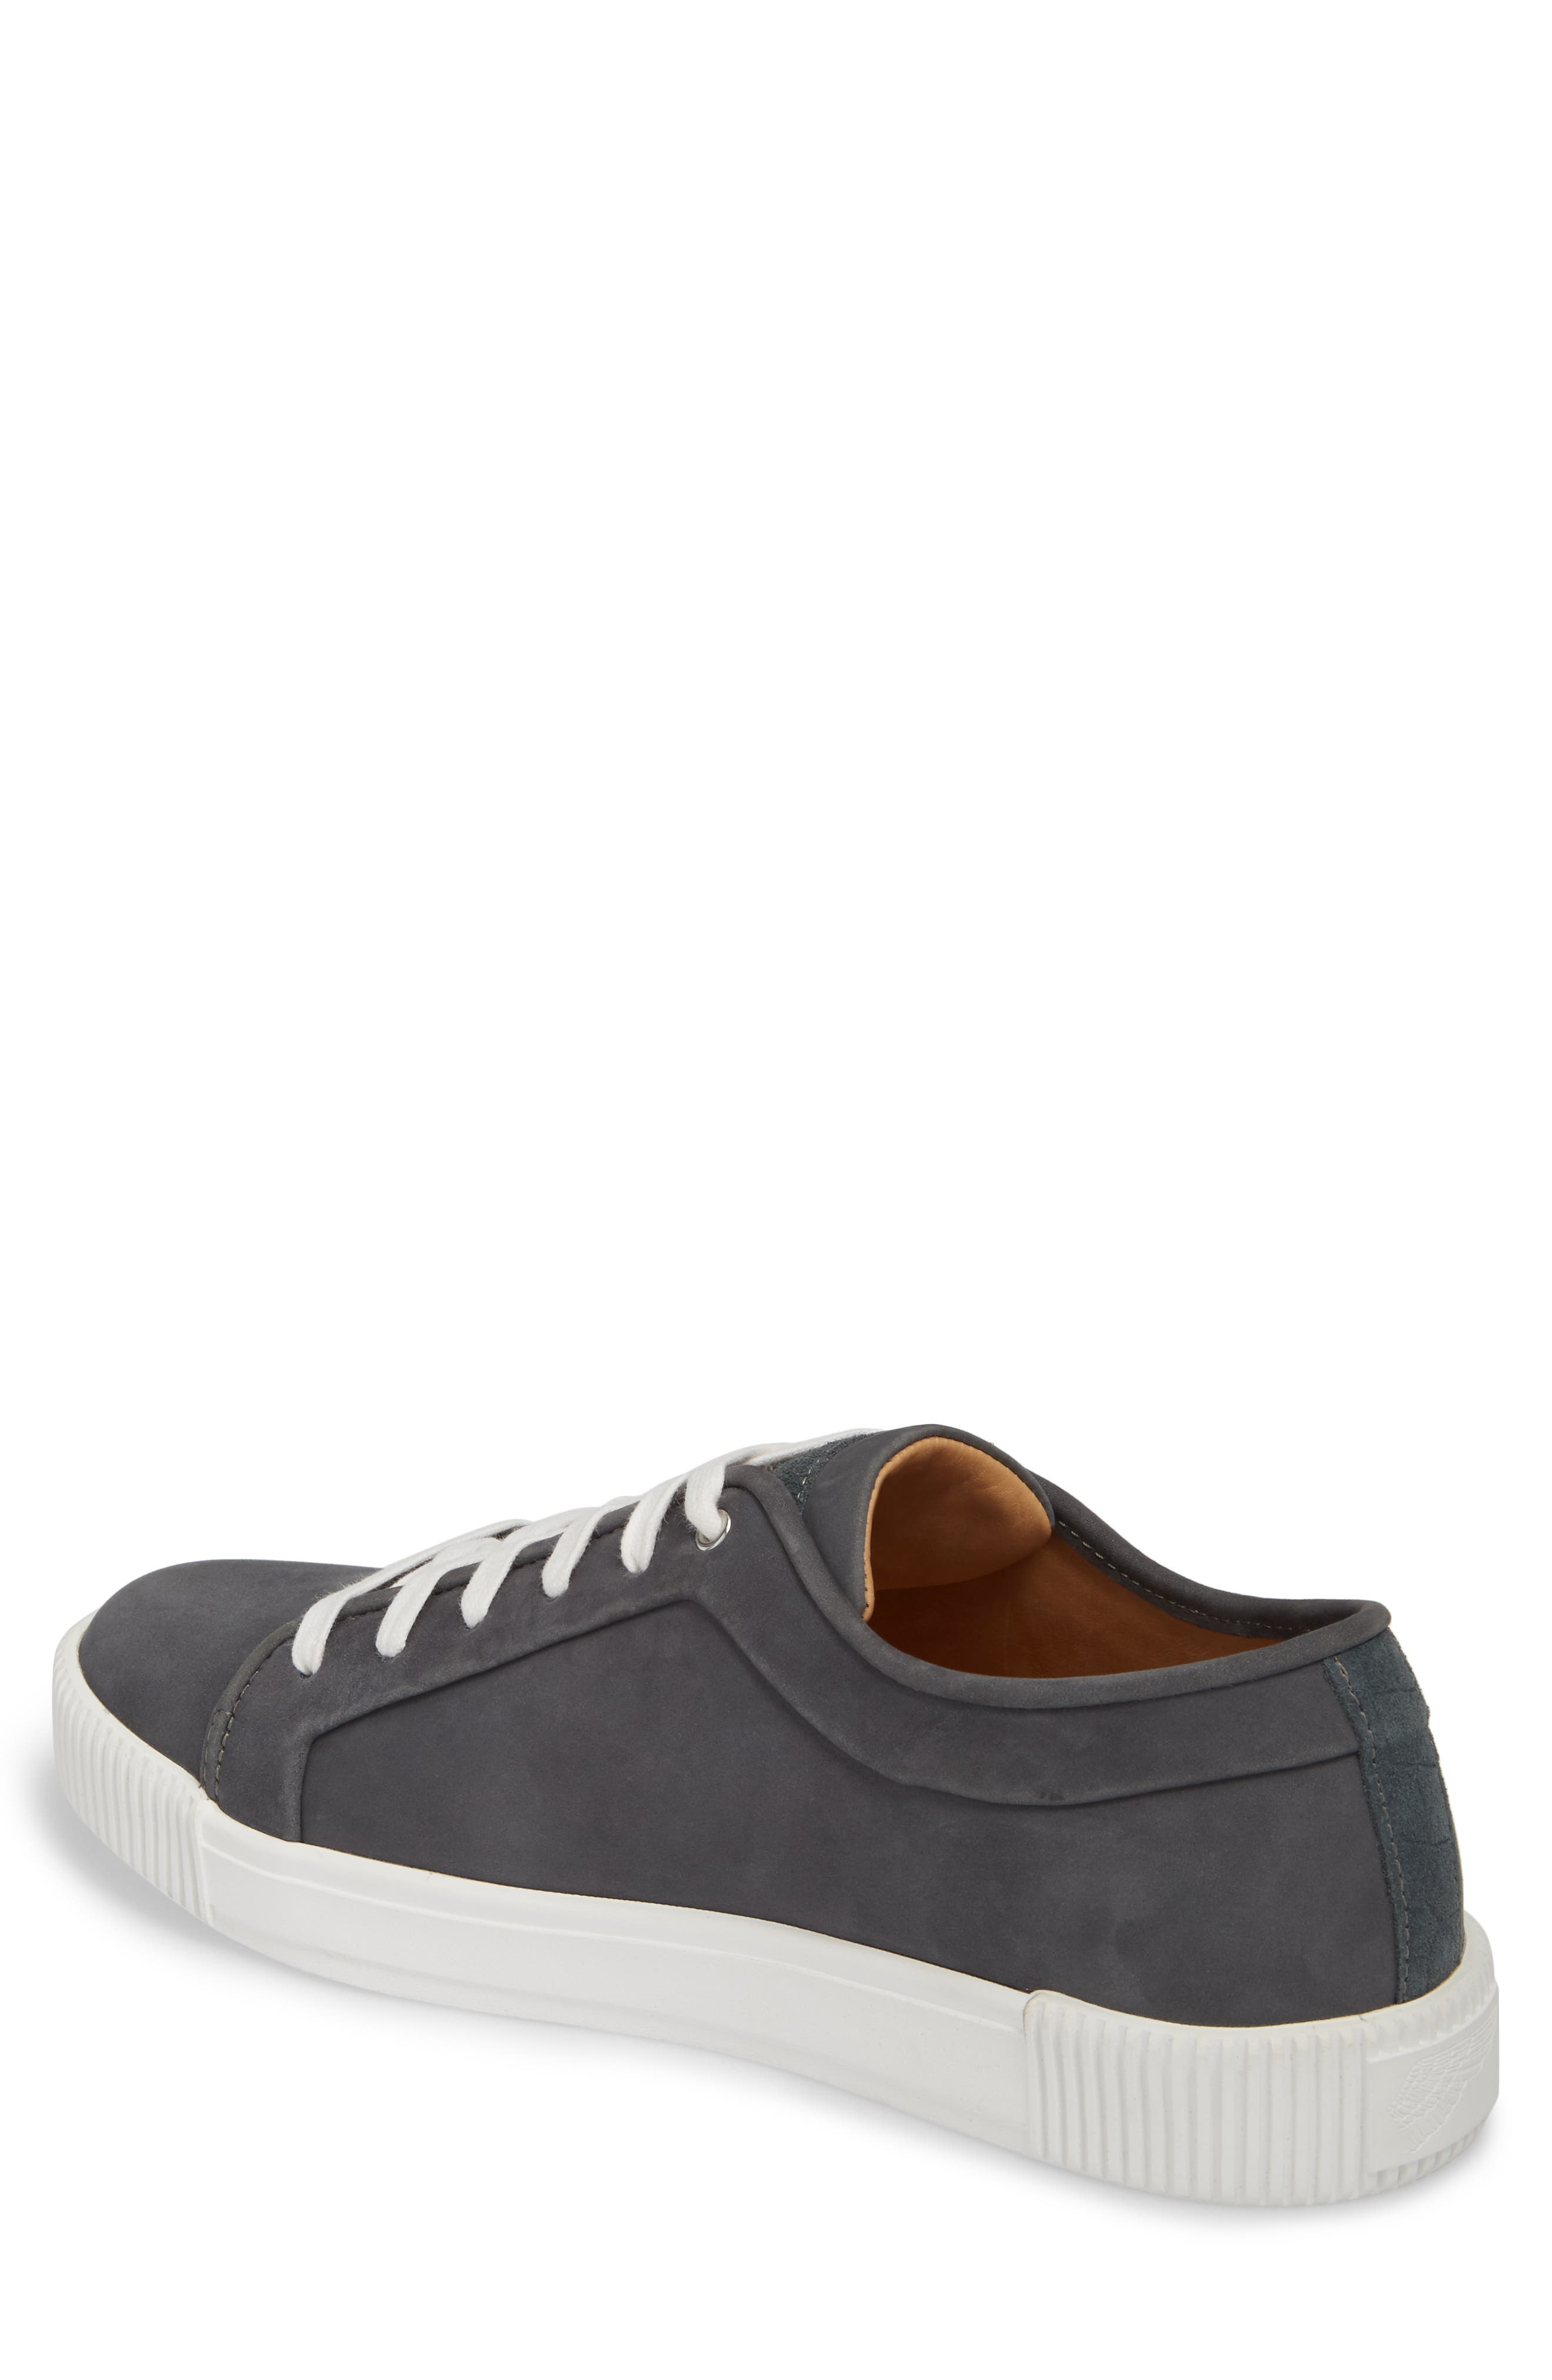 Lyons Low Top Sneaker,                             Alternate thumbnail 2, color,                             020